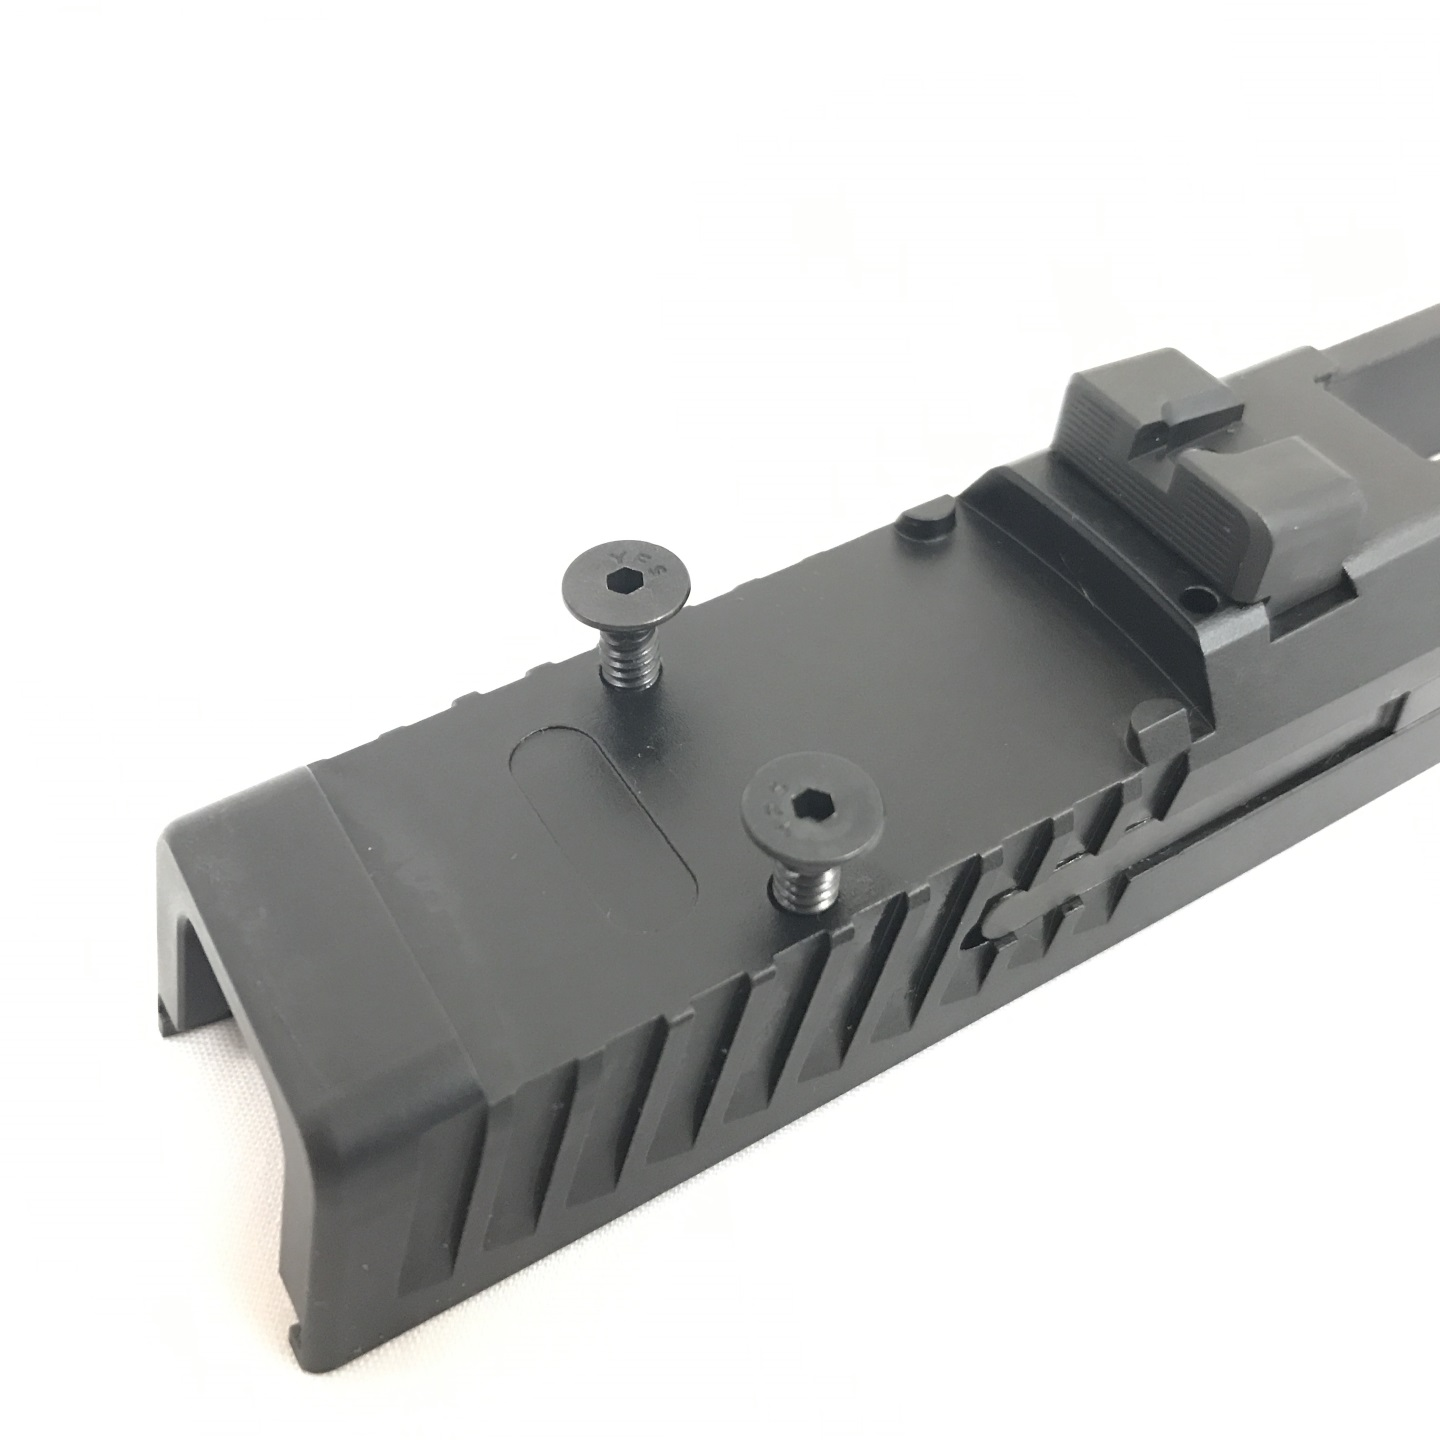 Reccomend sights for cz p10c suppressor ready that's getting